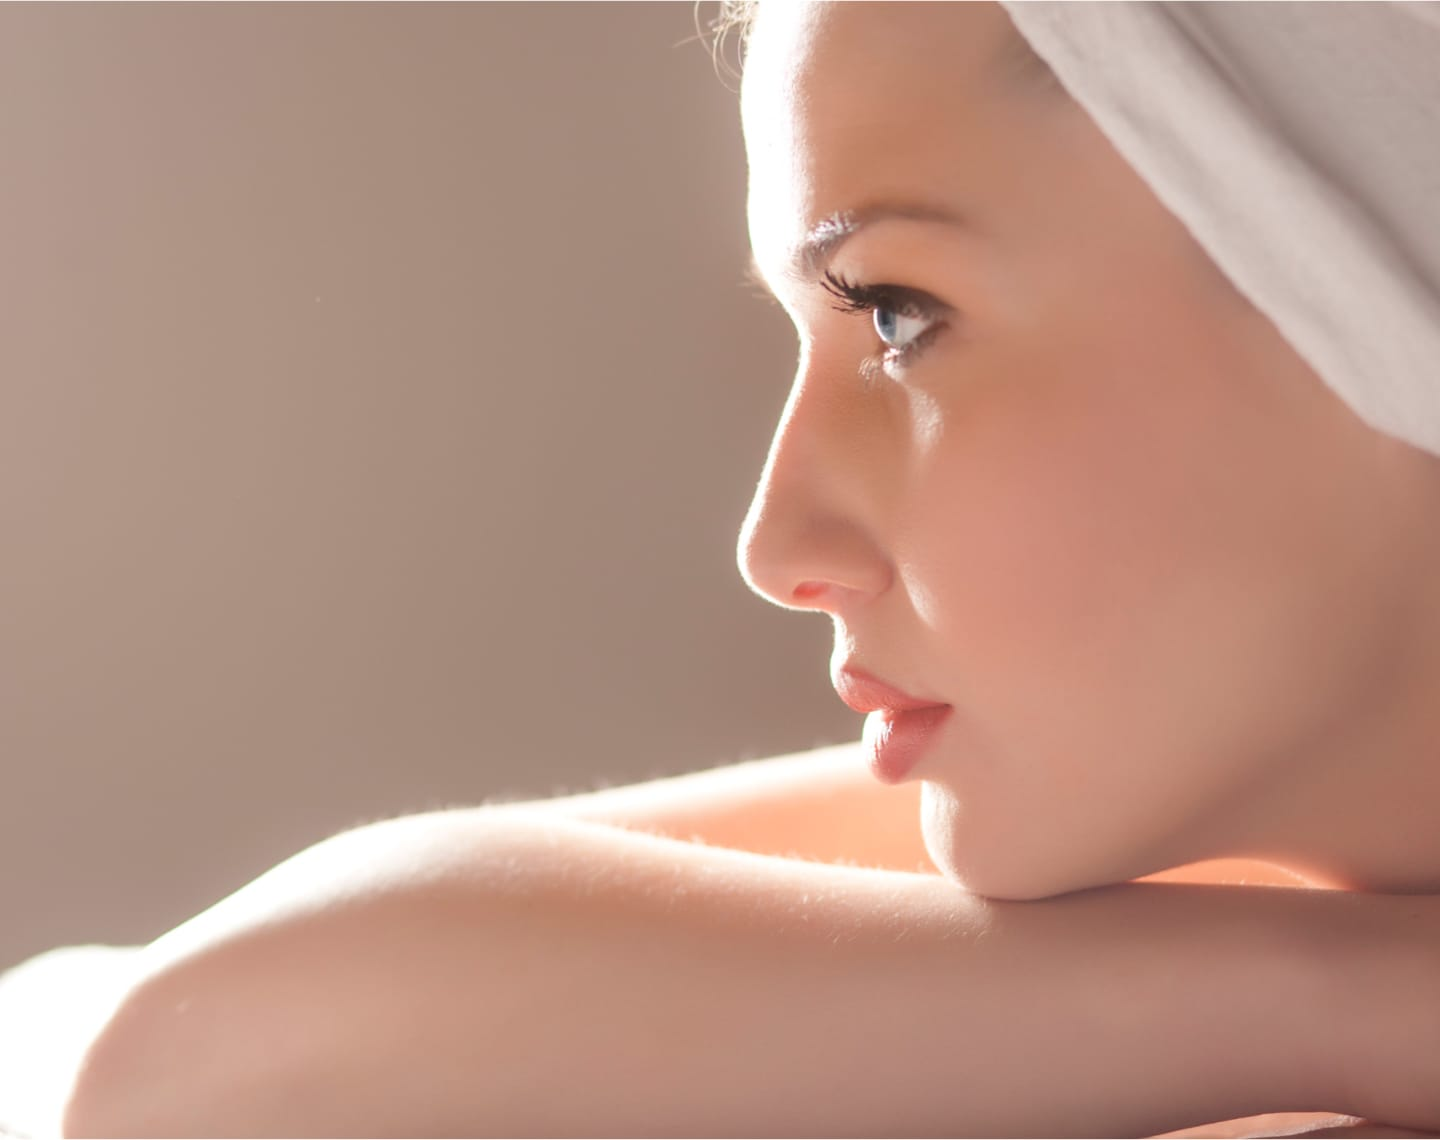 Revision Rhinoplasty Atlanta